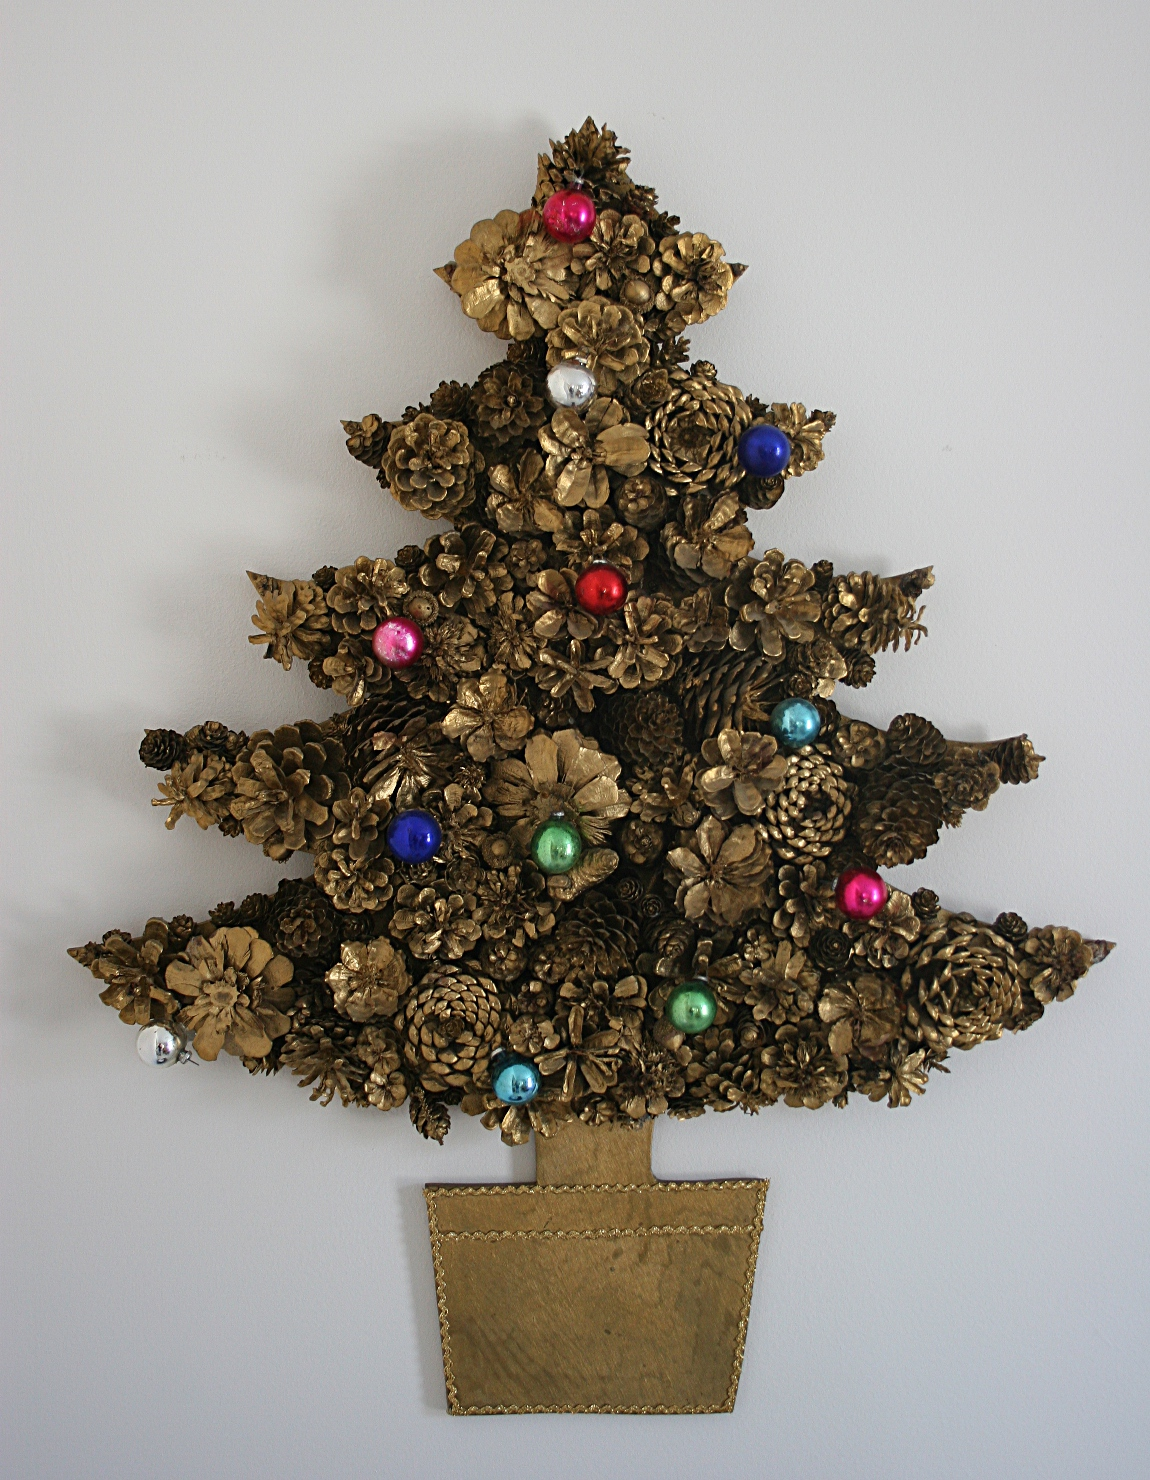 How to Make a Christmas Tree with Paper or Cardboard. Most of these Christmas tree projects use either a paper or cardboard cone as a base. 'Craftaholics Anonymous' has an easy to follow tutorial for their paper Christmas trees made from cardboard cones and ribbon trim. All .